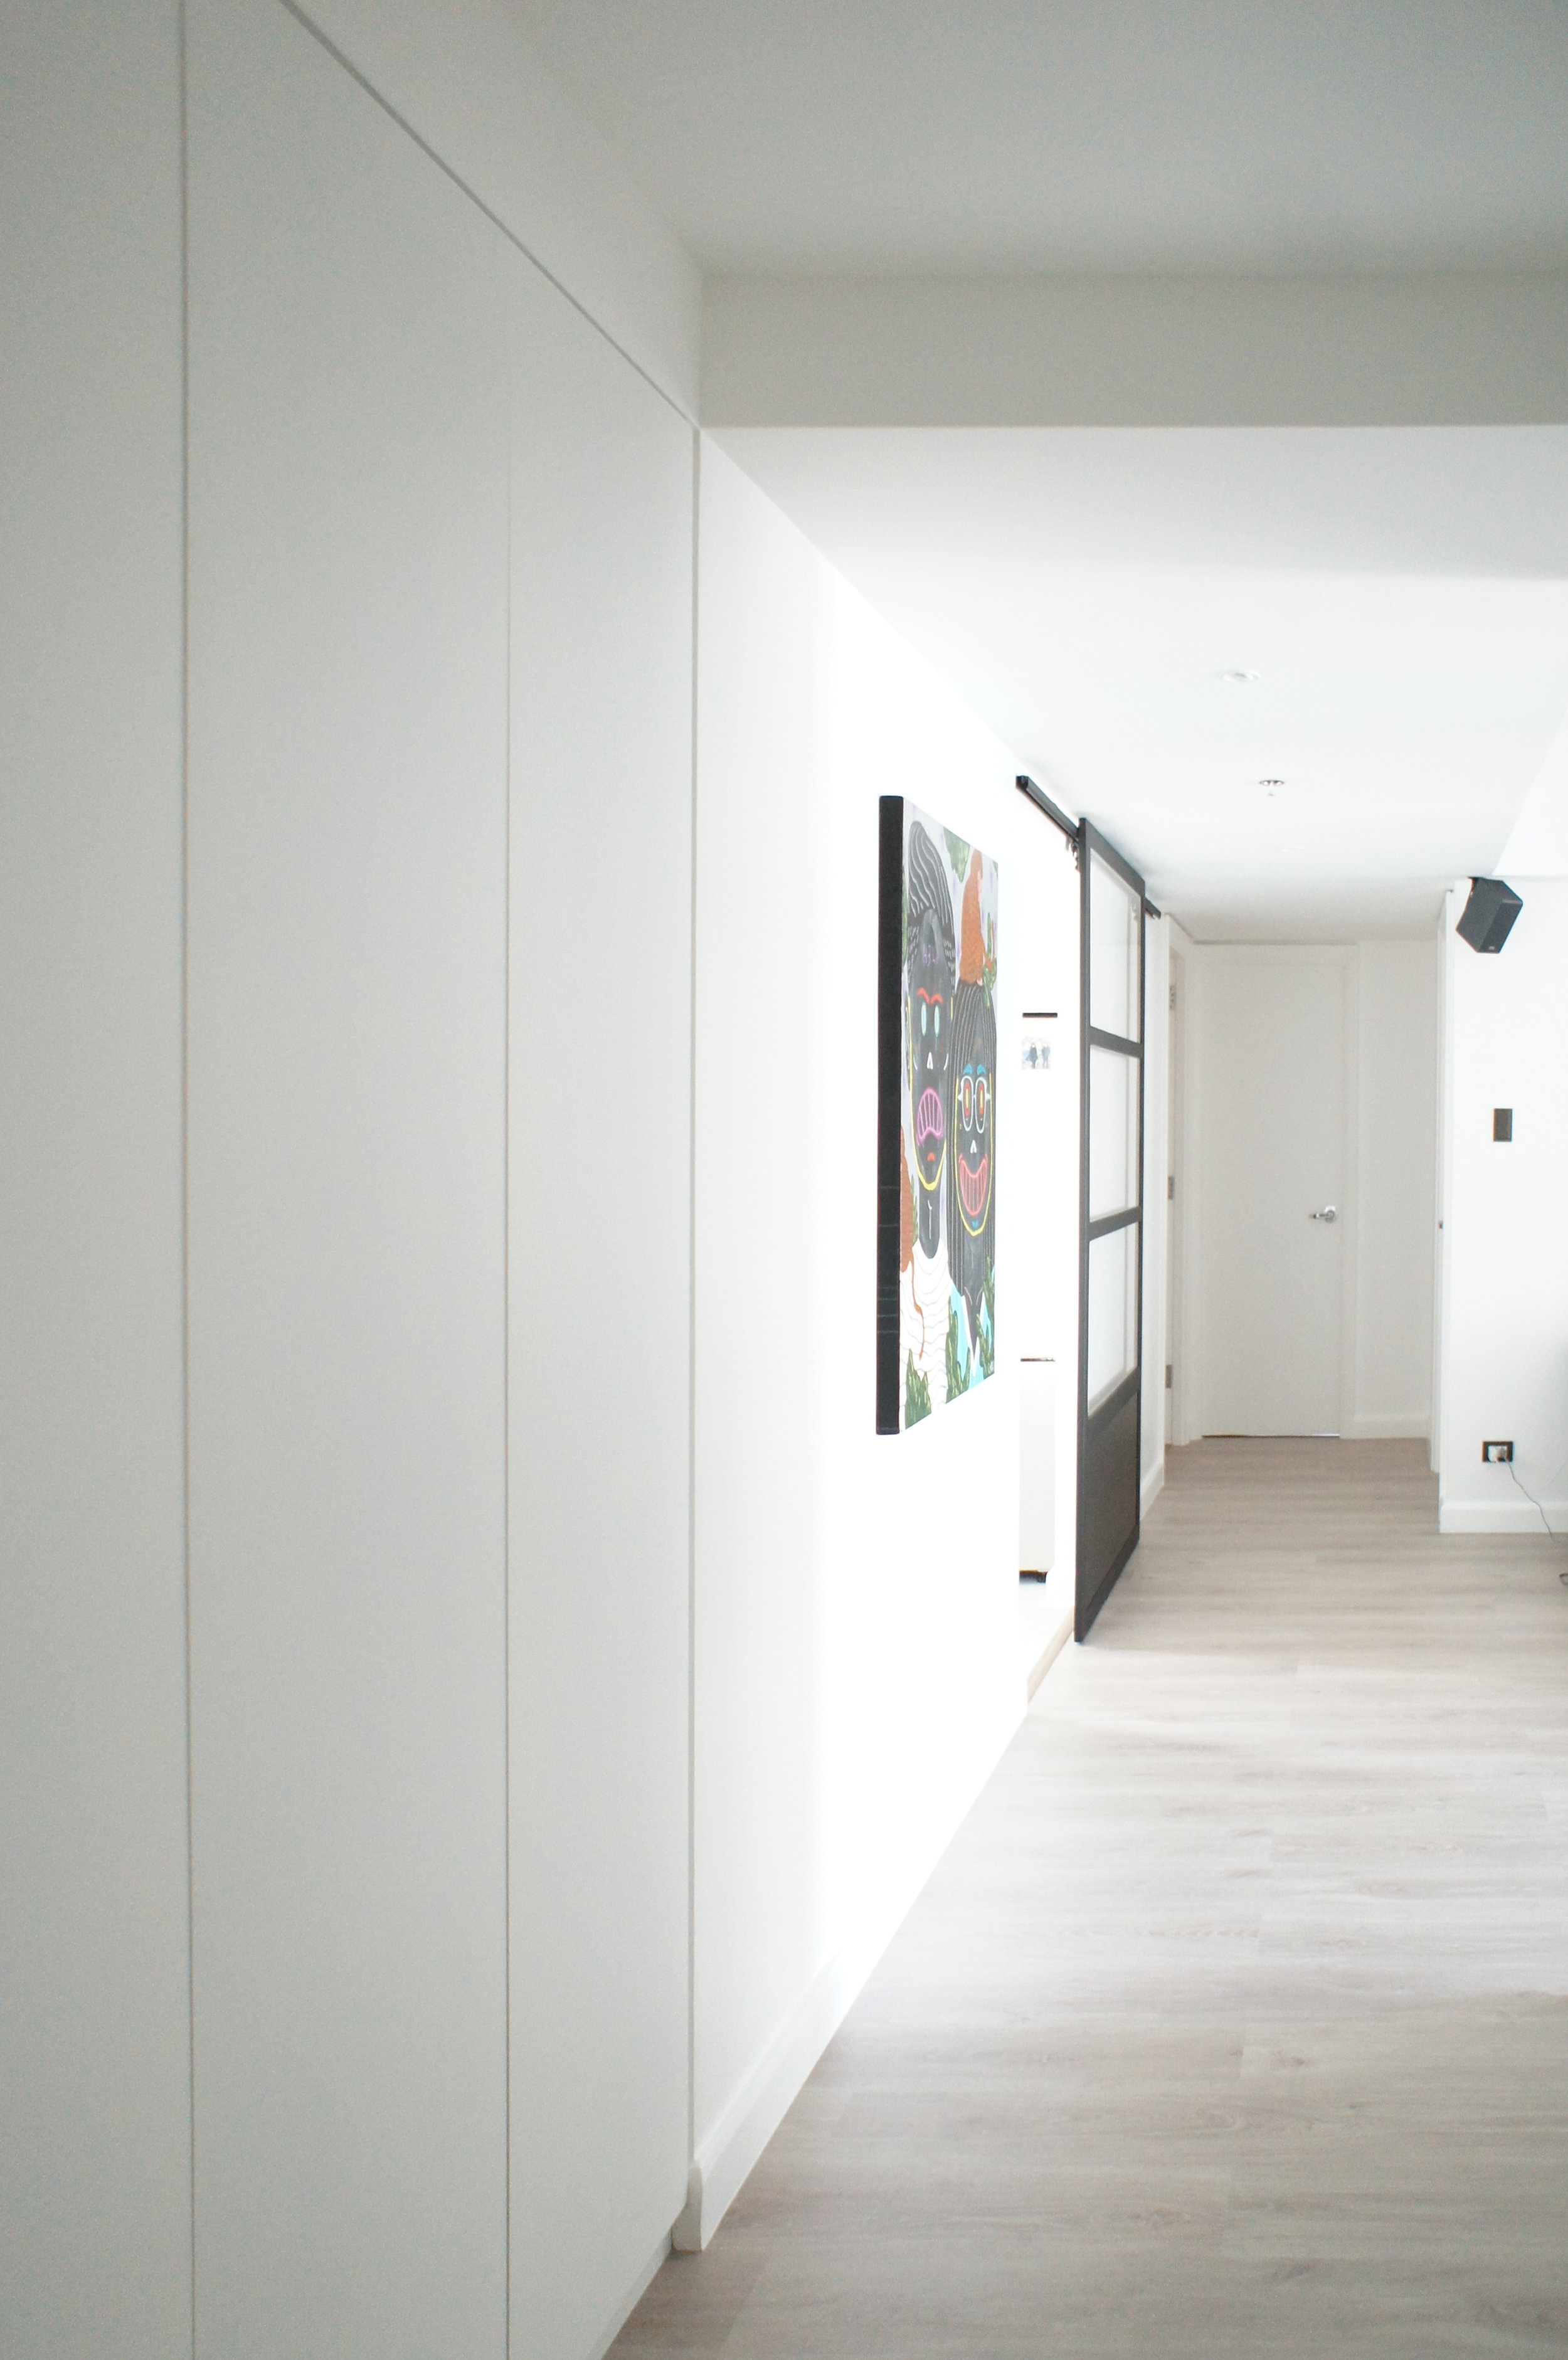 The apartment's palette of light wood, dark linen upholstery and matte white lacquer repeats itself in the entire home. The all white space provides a ready backdrop for the quickly growing art collection.  Additional floor to ceiling storage was carved out in the hallway. The built ins also serve the purpose of evening out the long wall. The kitchen is separated from the main living space by a metal framed glass sliding door. The kitchen cabinets utilize the same detail as the cabinets in the main living space, creating a continuous look throughout.